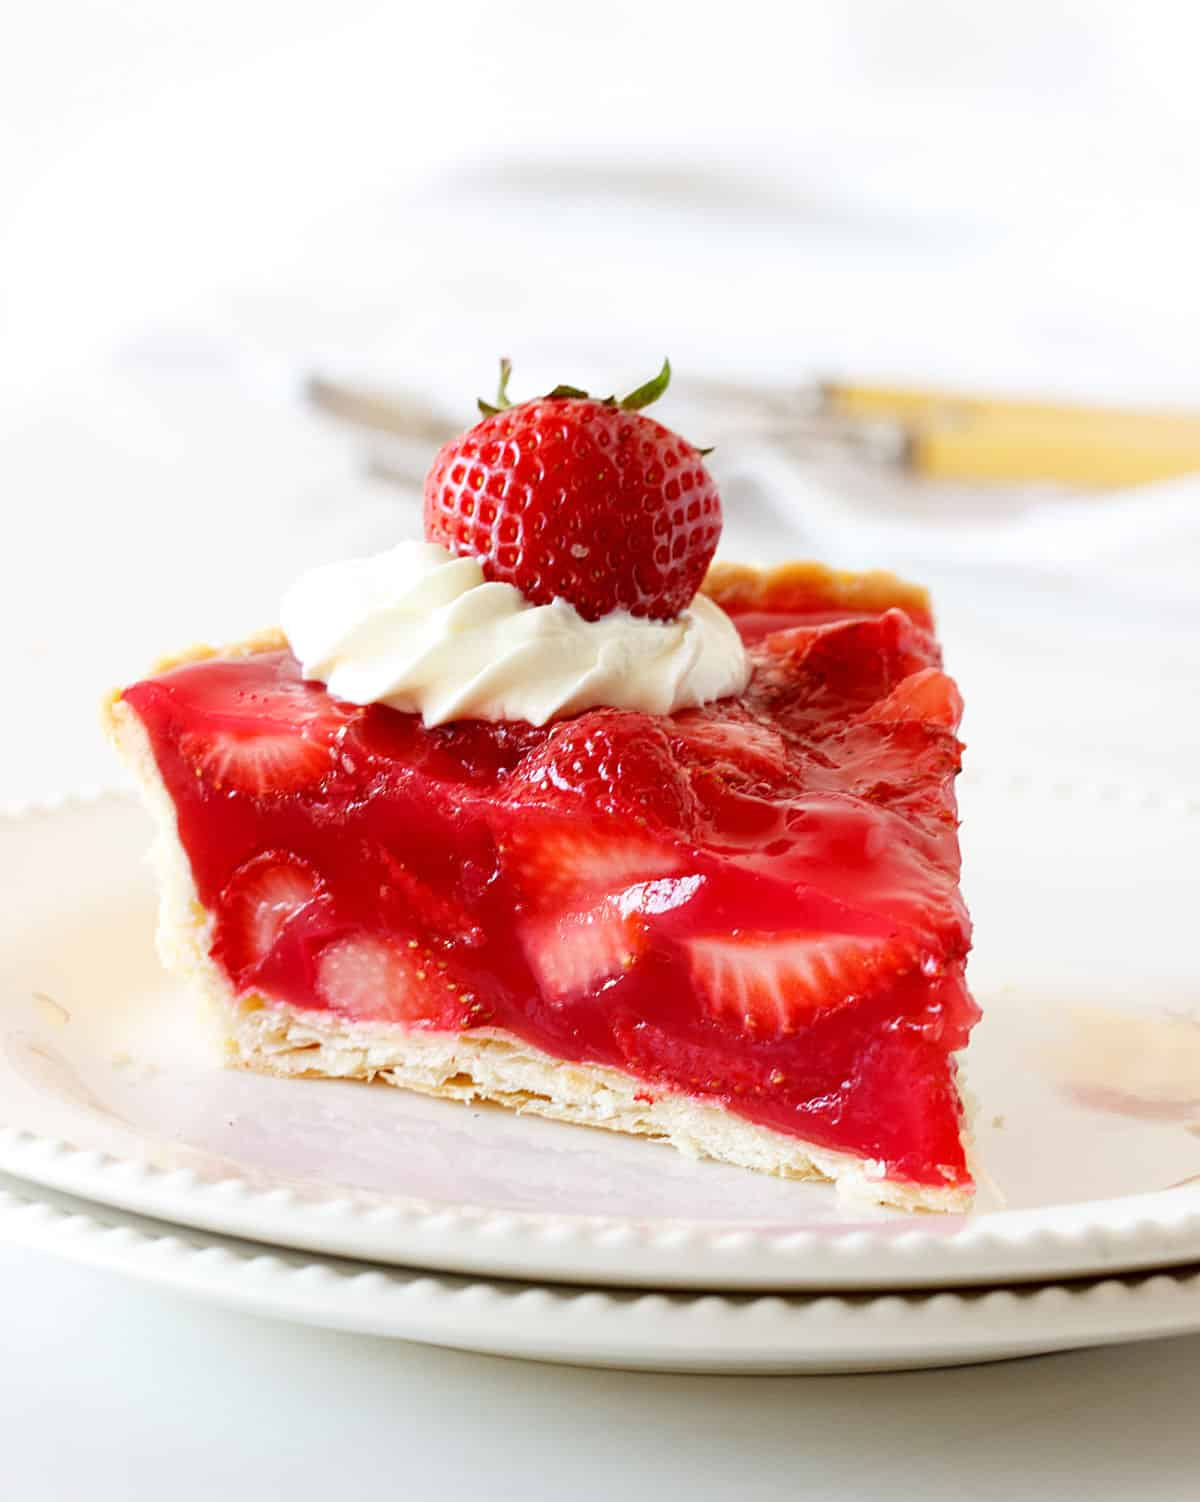 A slice of fresh strawberry pie on white plate with white background